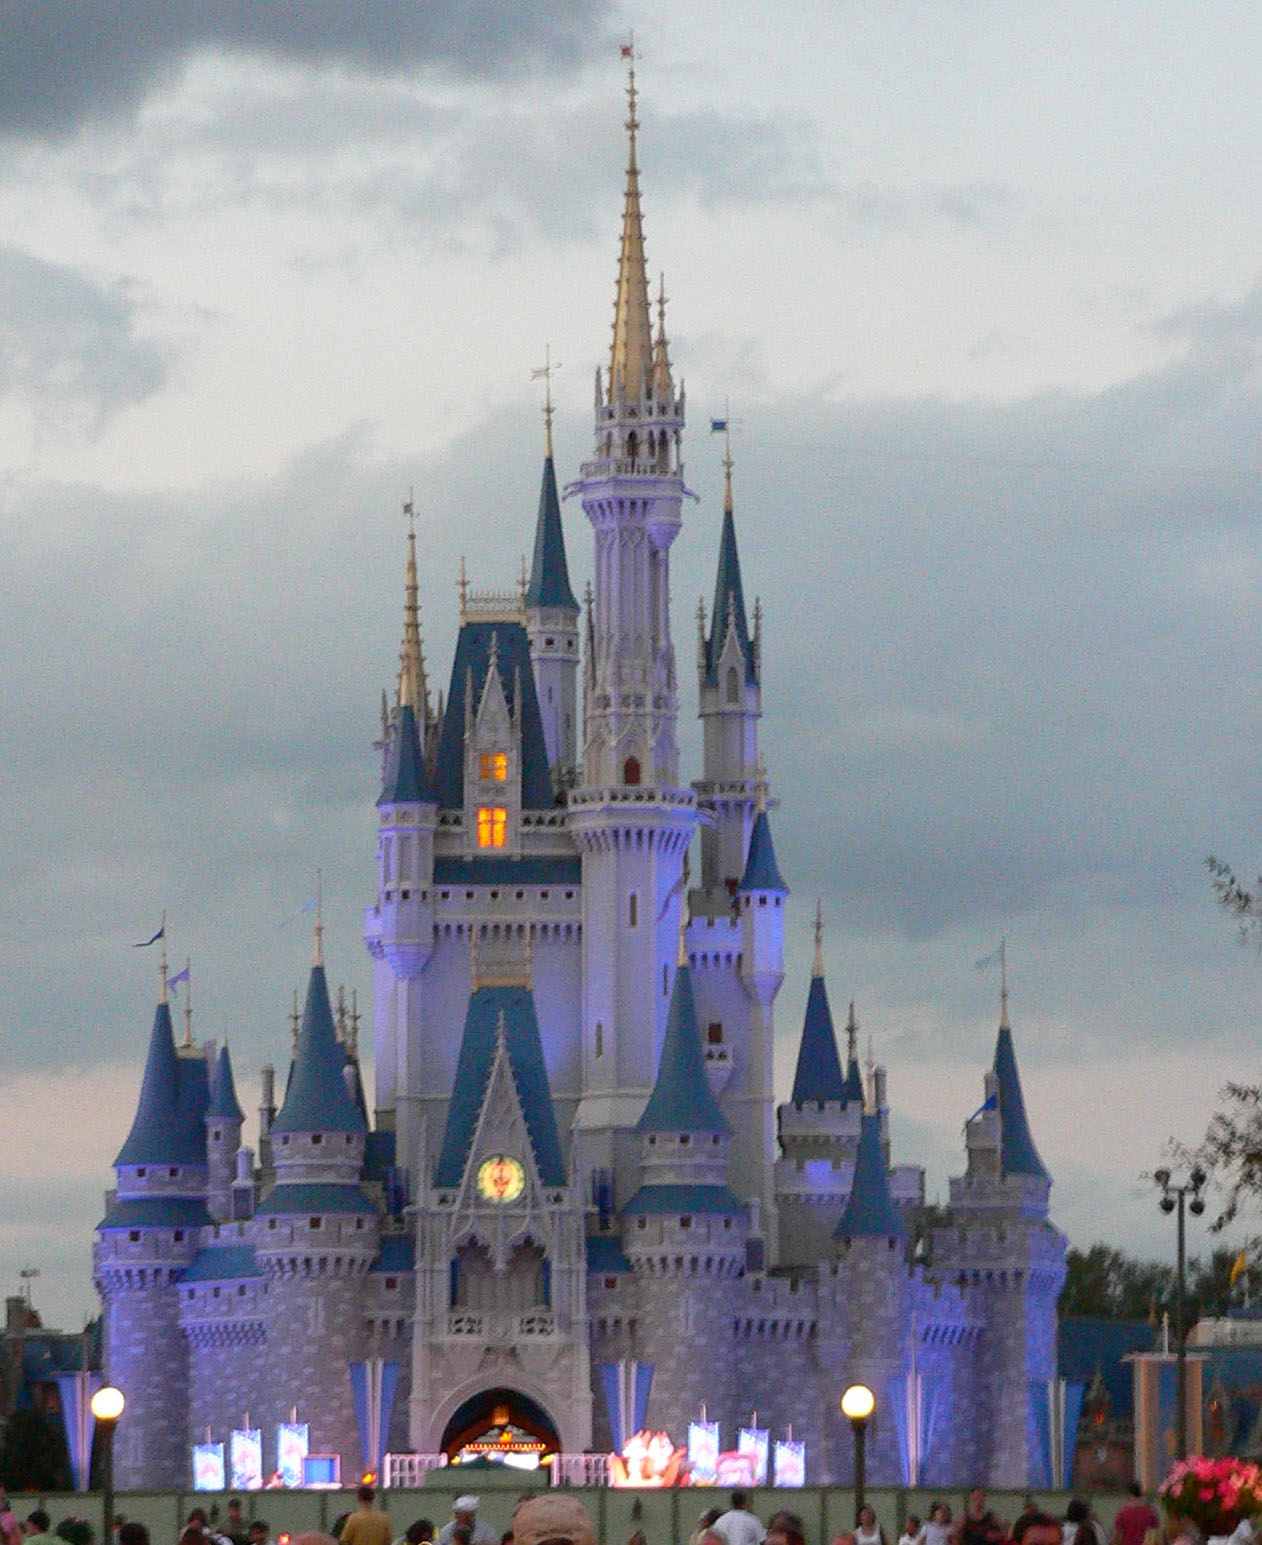 http://2.bp.blogspot.com/-YtiB9TUOqNo/TcONNOaFfwI/AAAAAAAALEY/_ZZaTF7hwQw/s1600/Magic_Kingdom_castle.jpg